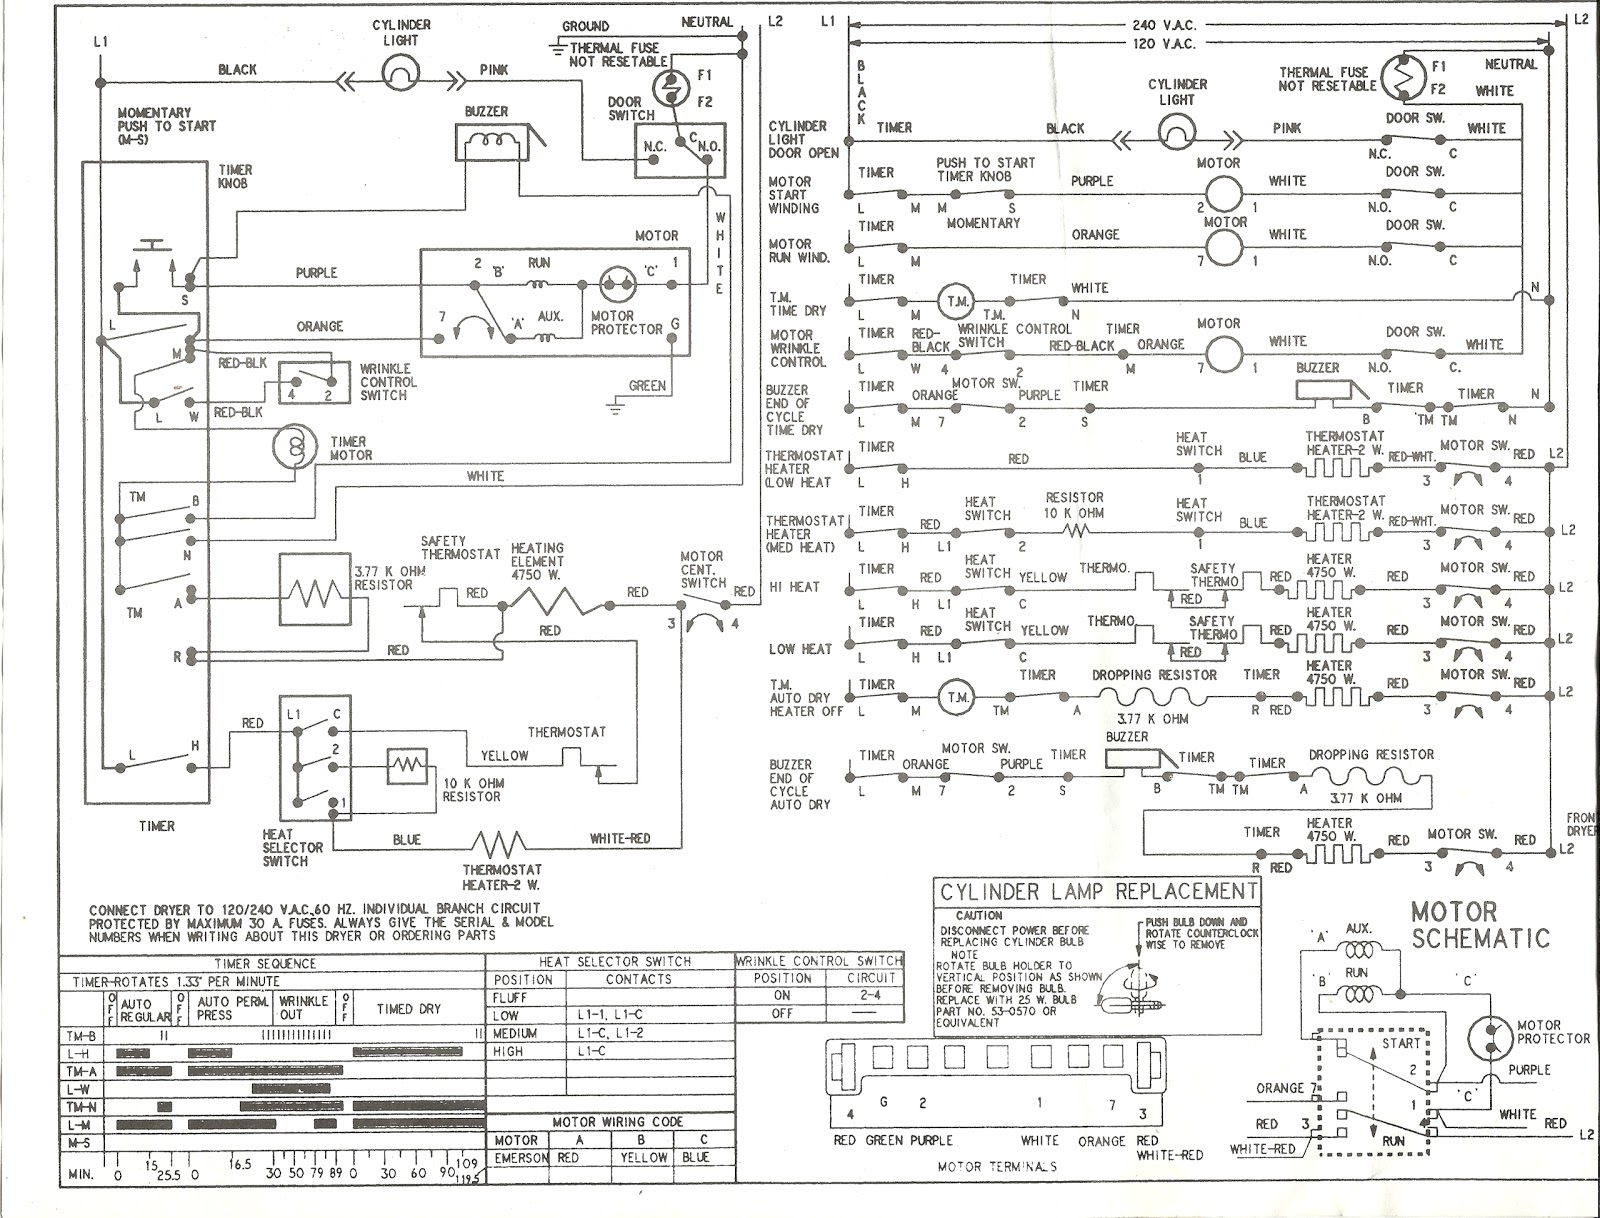 kenmore washer wiring diagram on wiring diagram parts wiring for kenmore 80 series washer parts diagram wiring diagram for whirlpool washer on wiring download wirning  at bakdesigns.co